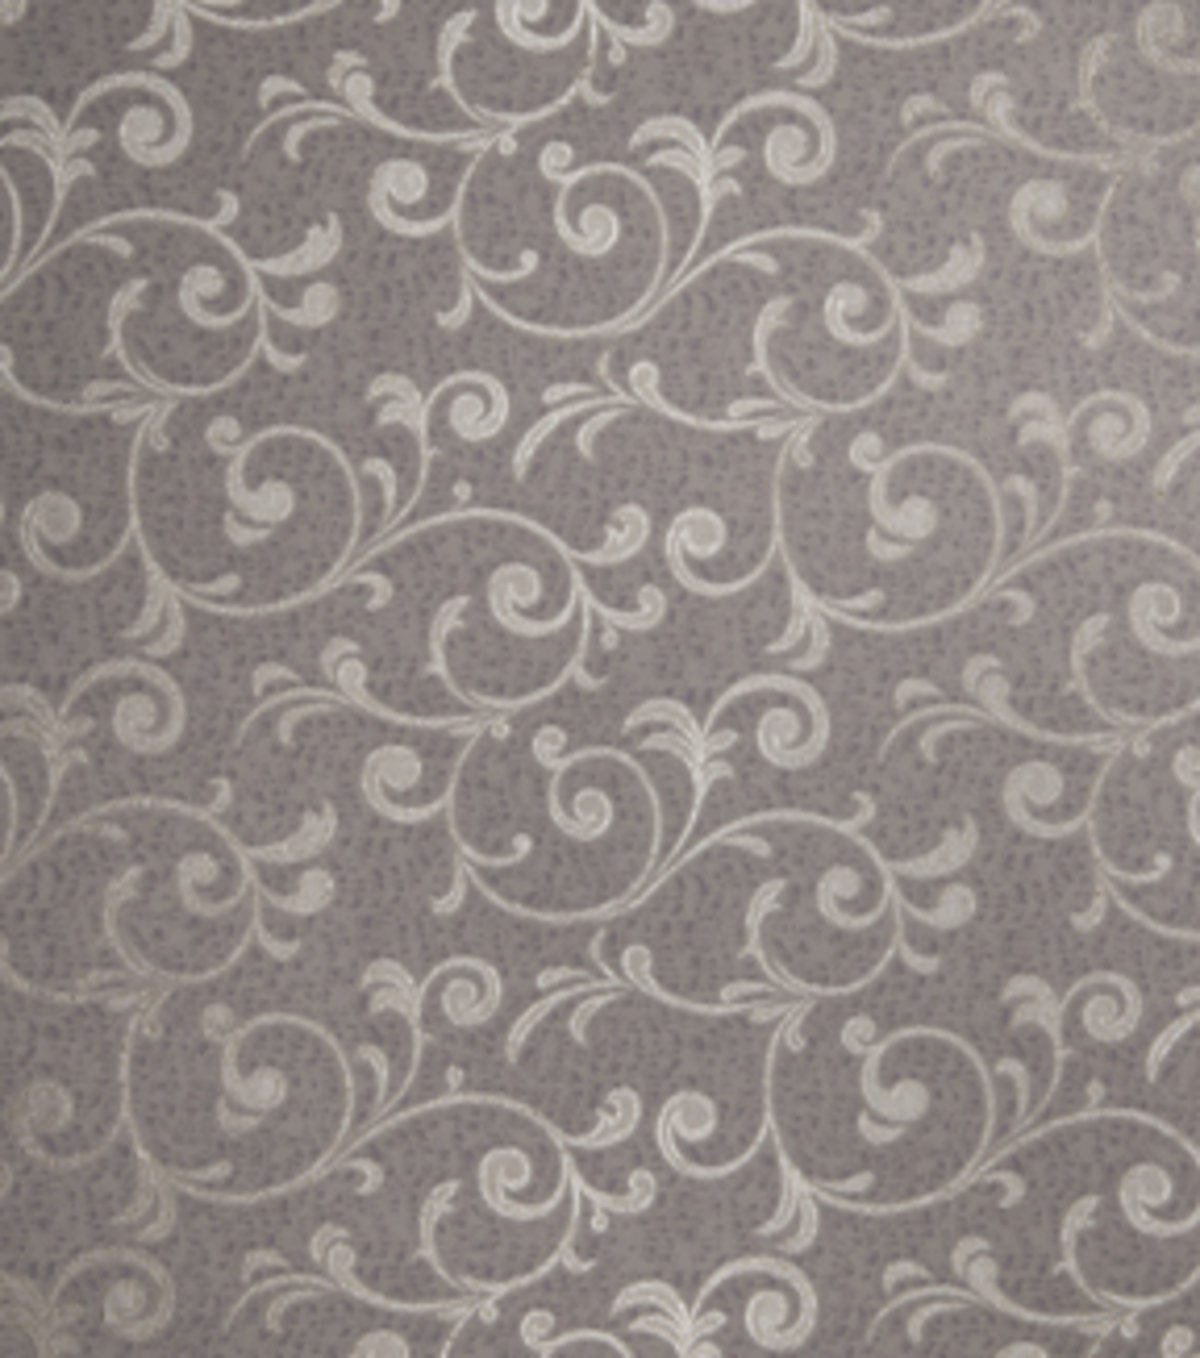 Home Decor 8\u0022x8\u0022 Fabric Swatch-Print Fabric Eaton Square Term Beige